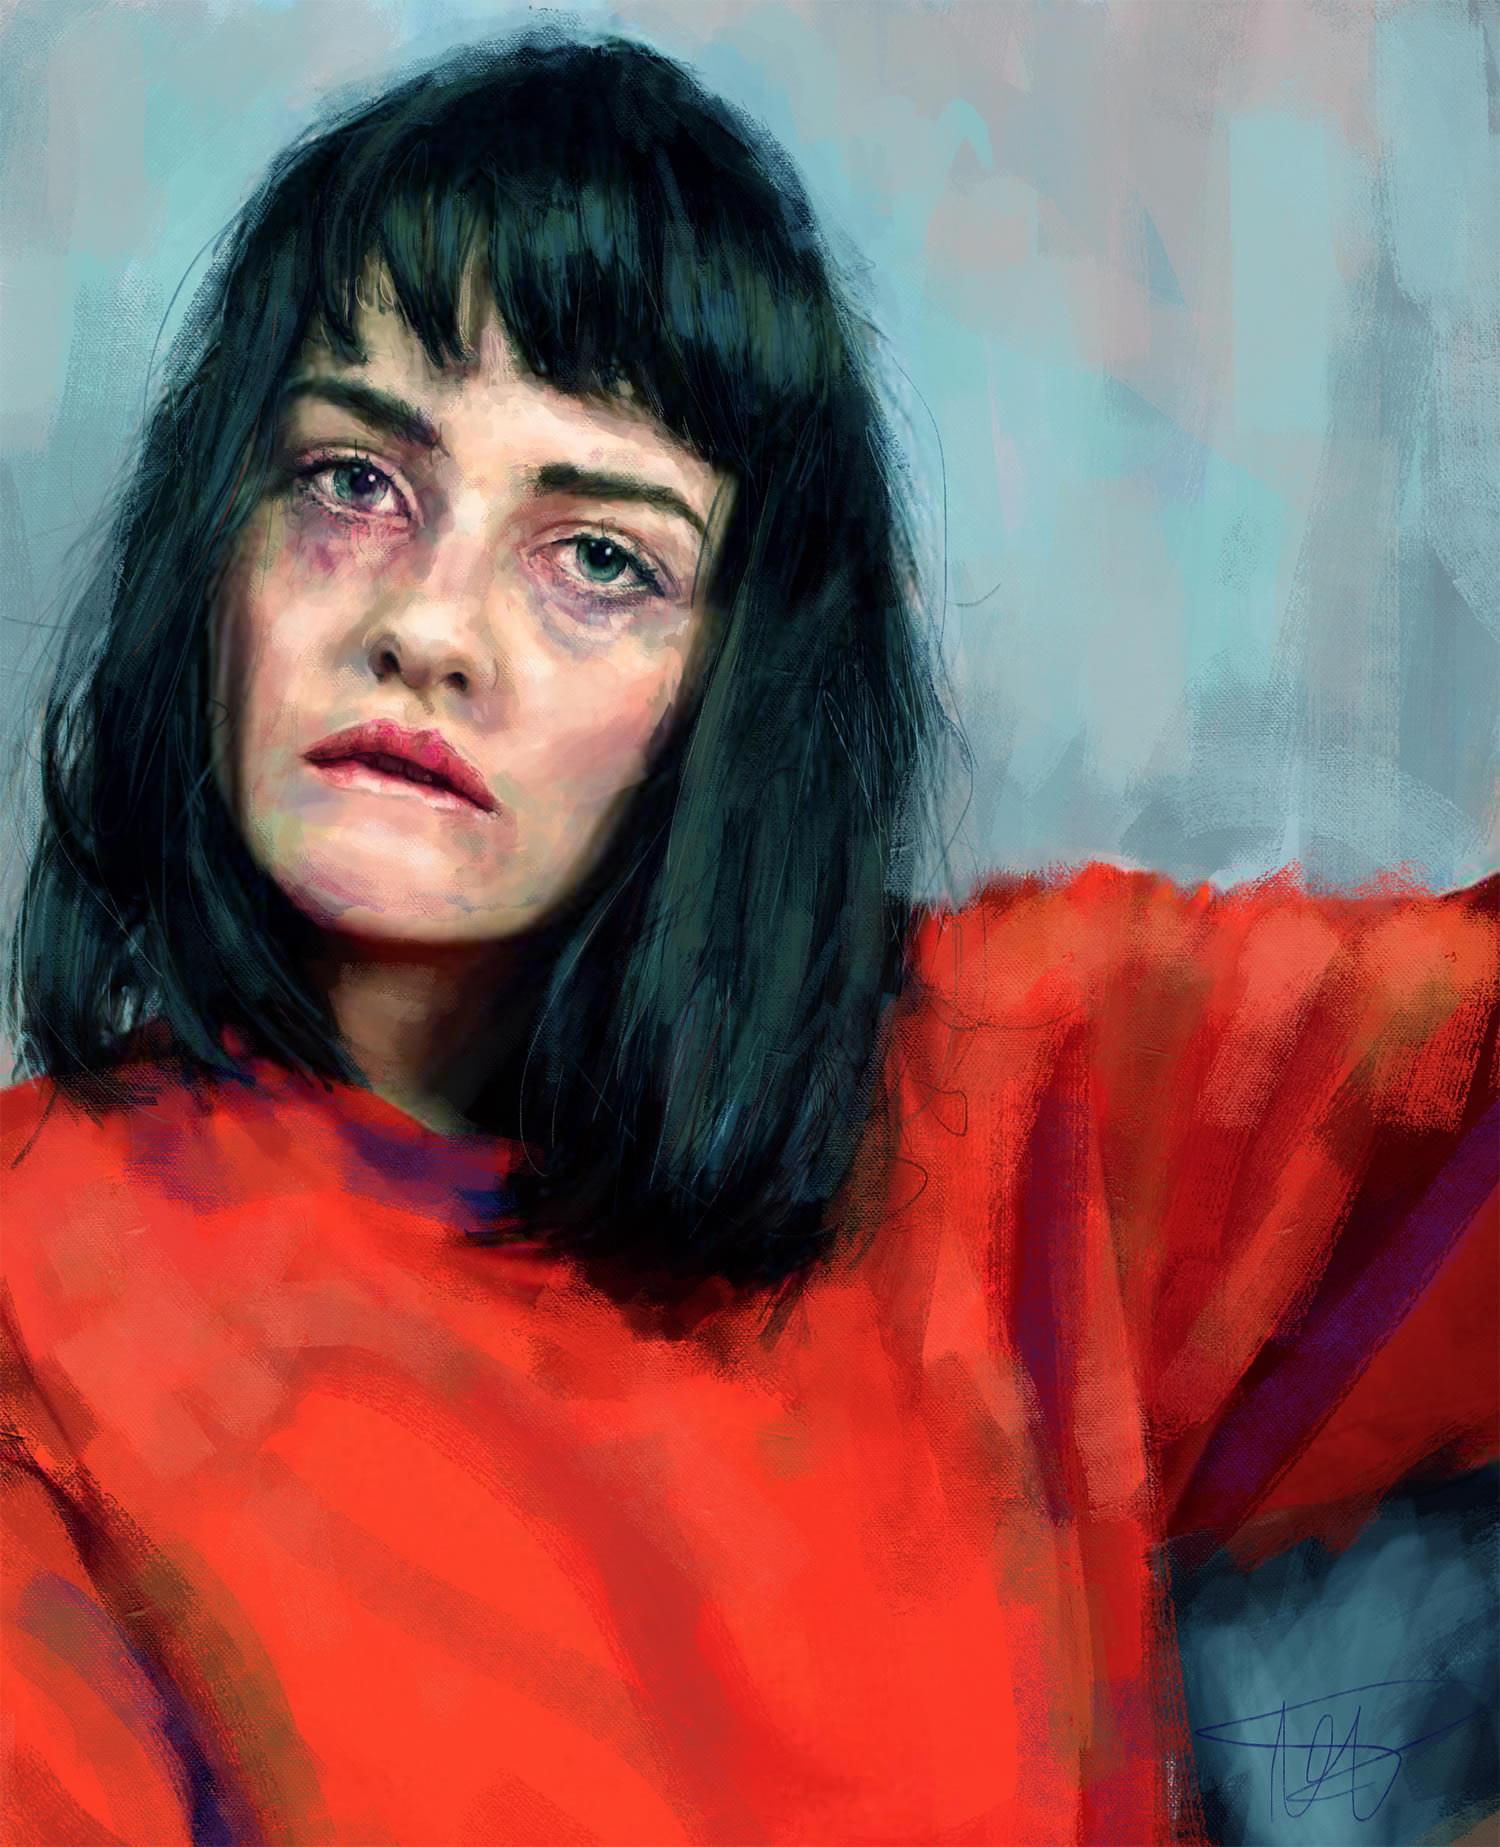 young woman portrait, red sweater